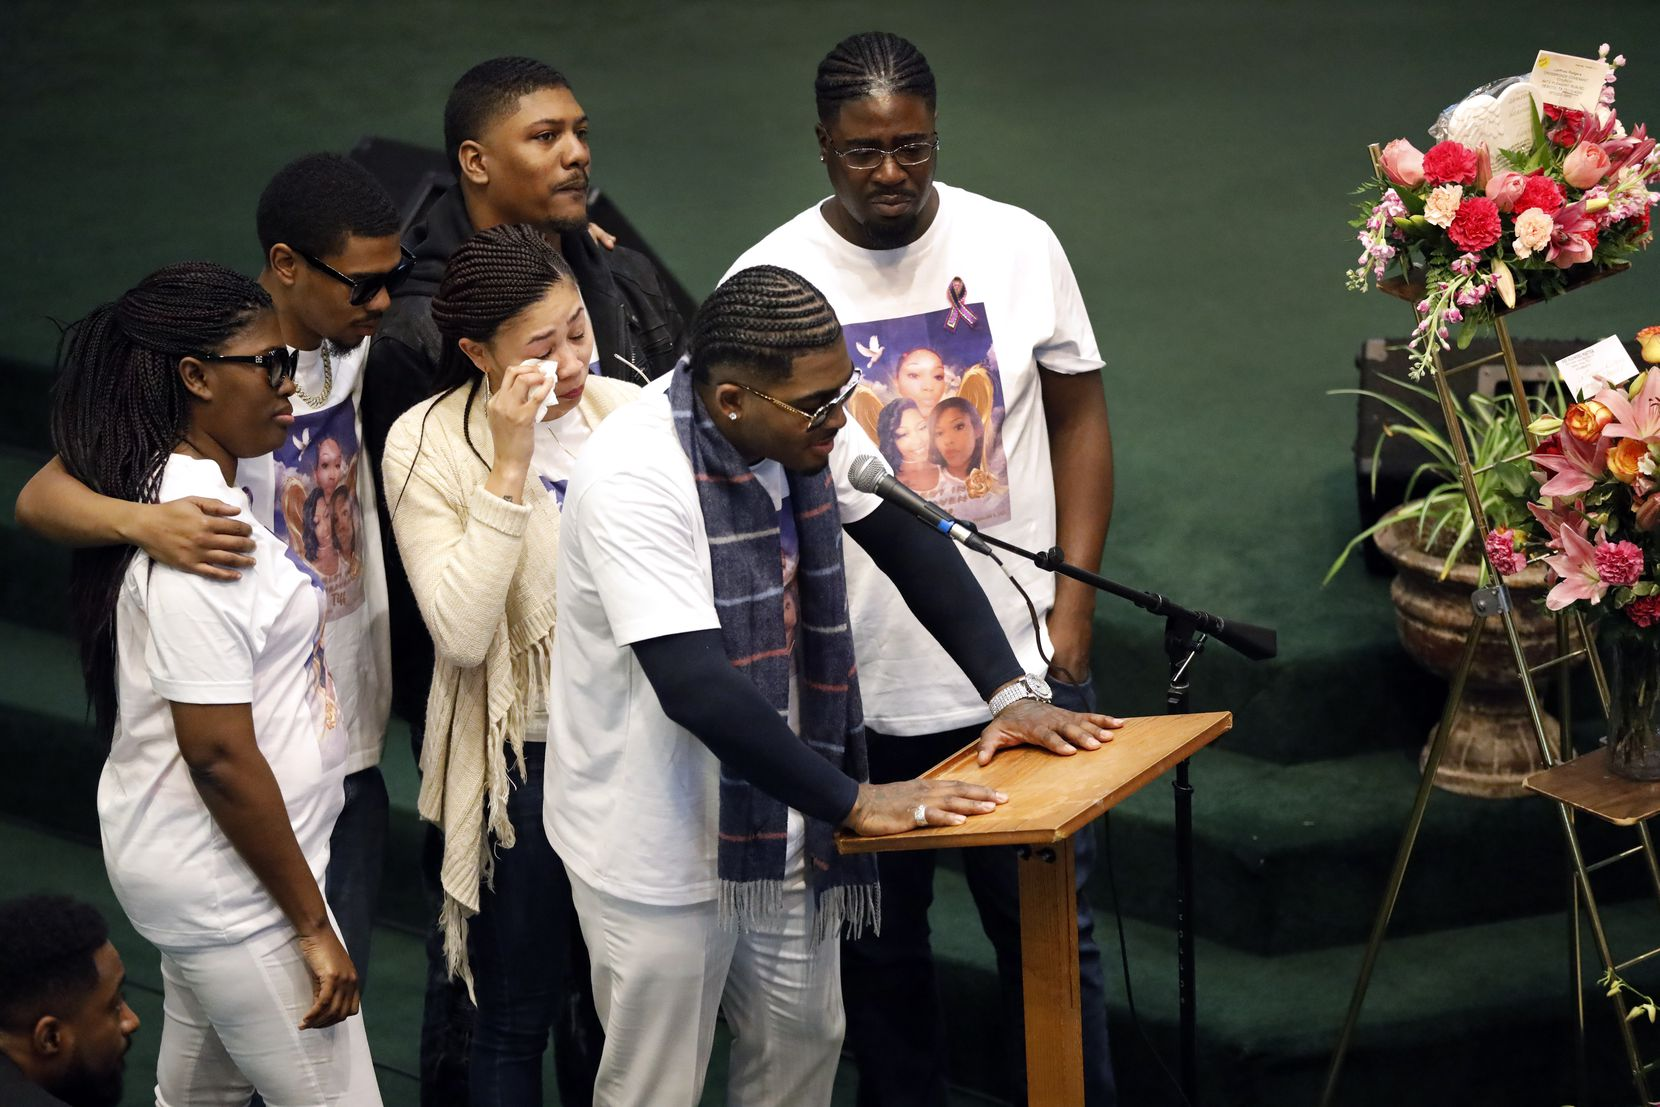 Brothers and sisters of LaTiffiney Rodgers, clockwise from Ramone Compton at microphone, Danielle Roberson (center), Keysha Price, Arthur Rodgers, Carl Rodgers and ZaModeric Odom shared stories with mourners a funeral service Feb. 22 in DeSoto.